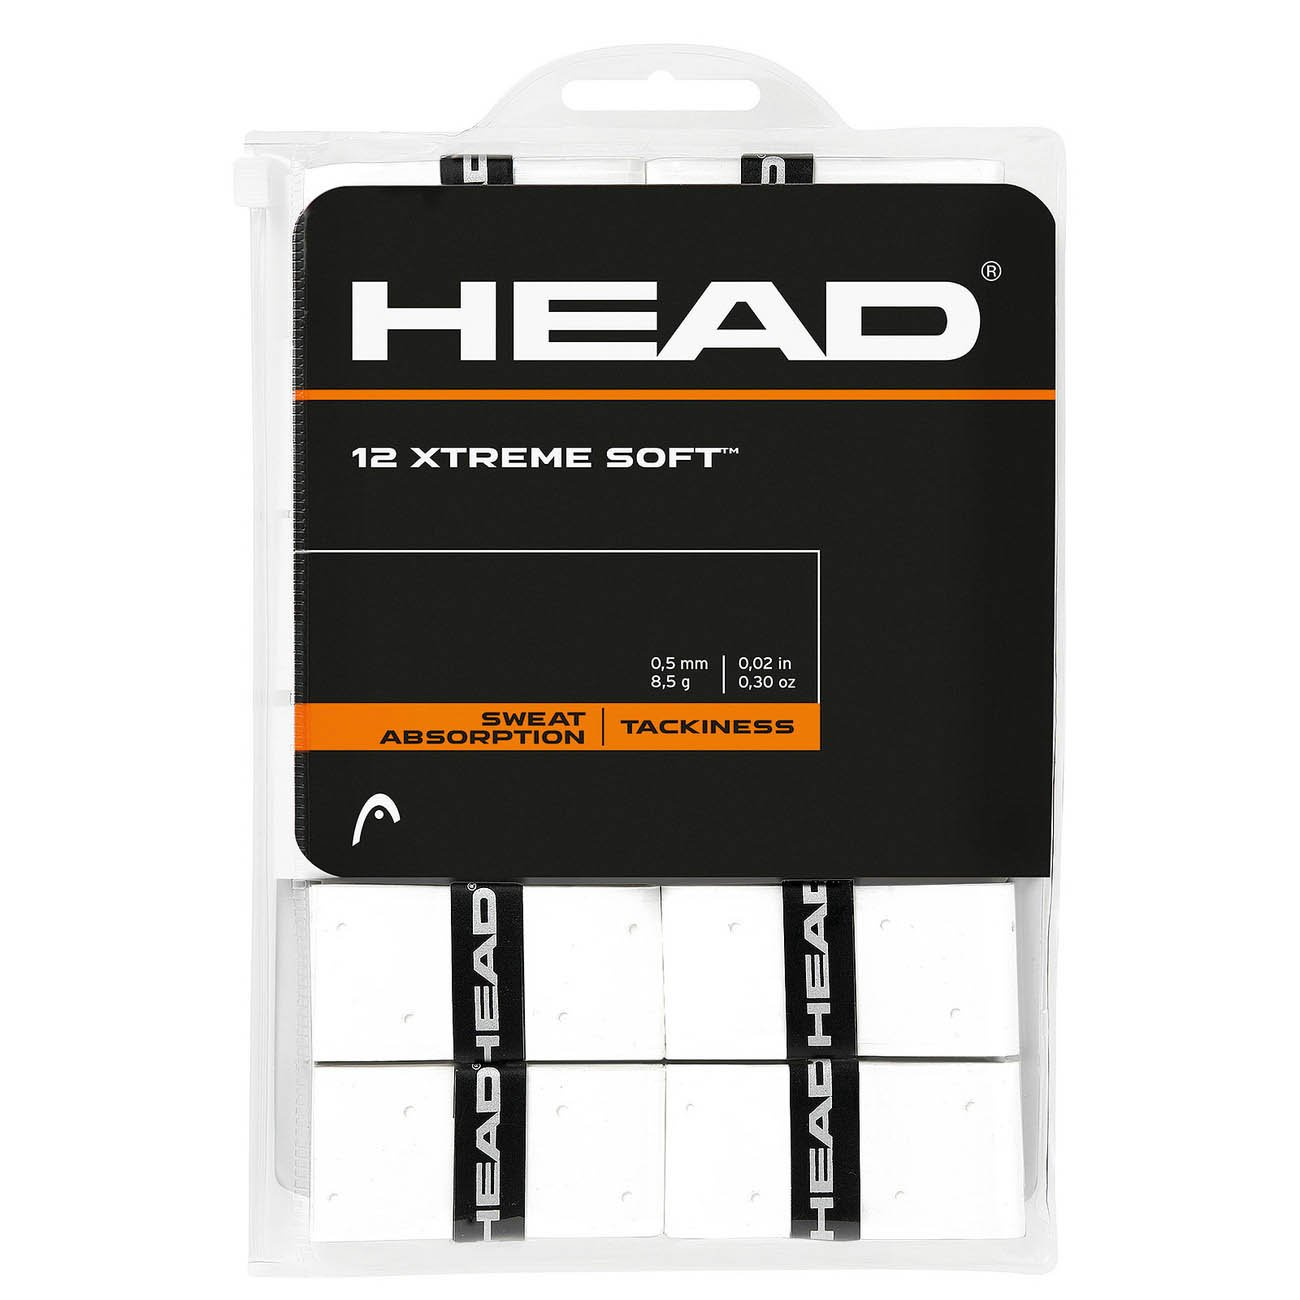 12 Overgrip Head Xtreme Soft Tennis Grips Bianco 285405-WH